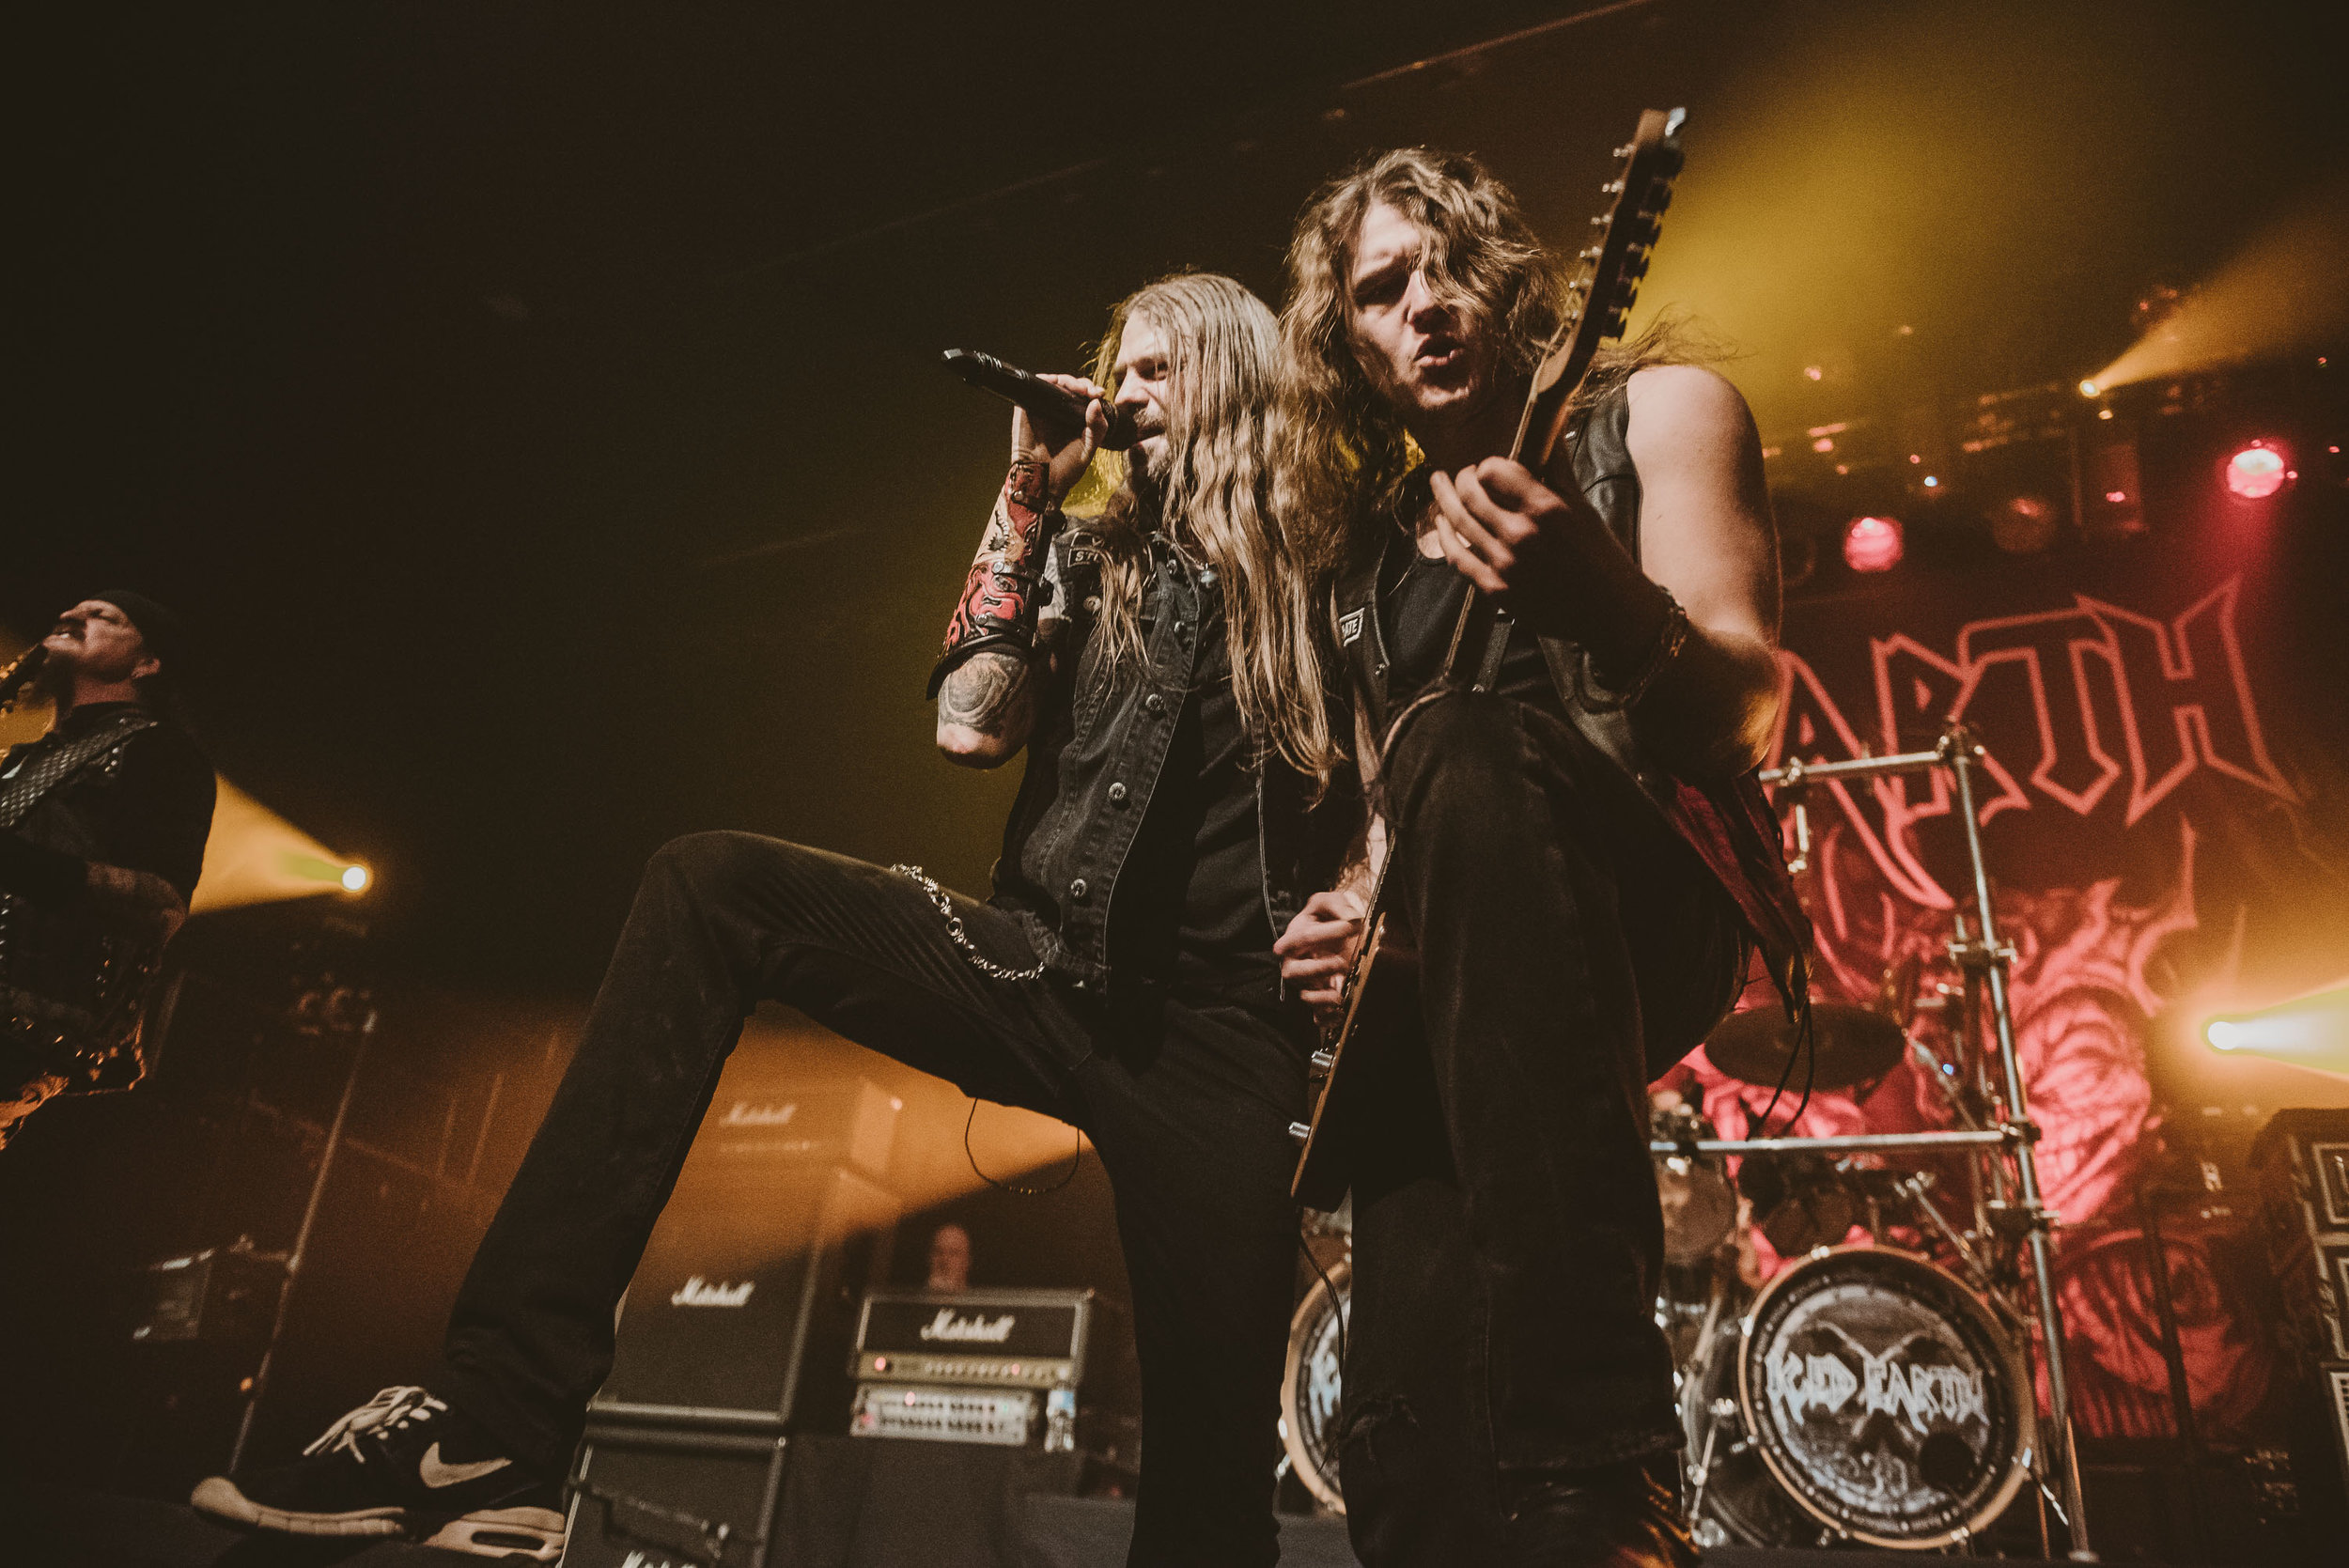 1_Iced_Earth-Rickshaw_Theatre-Timothy_Nguyen-20180304 (8 of 20).jpg